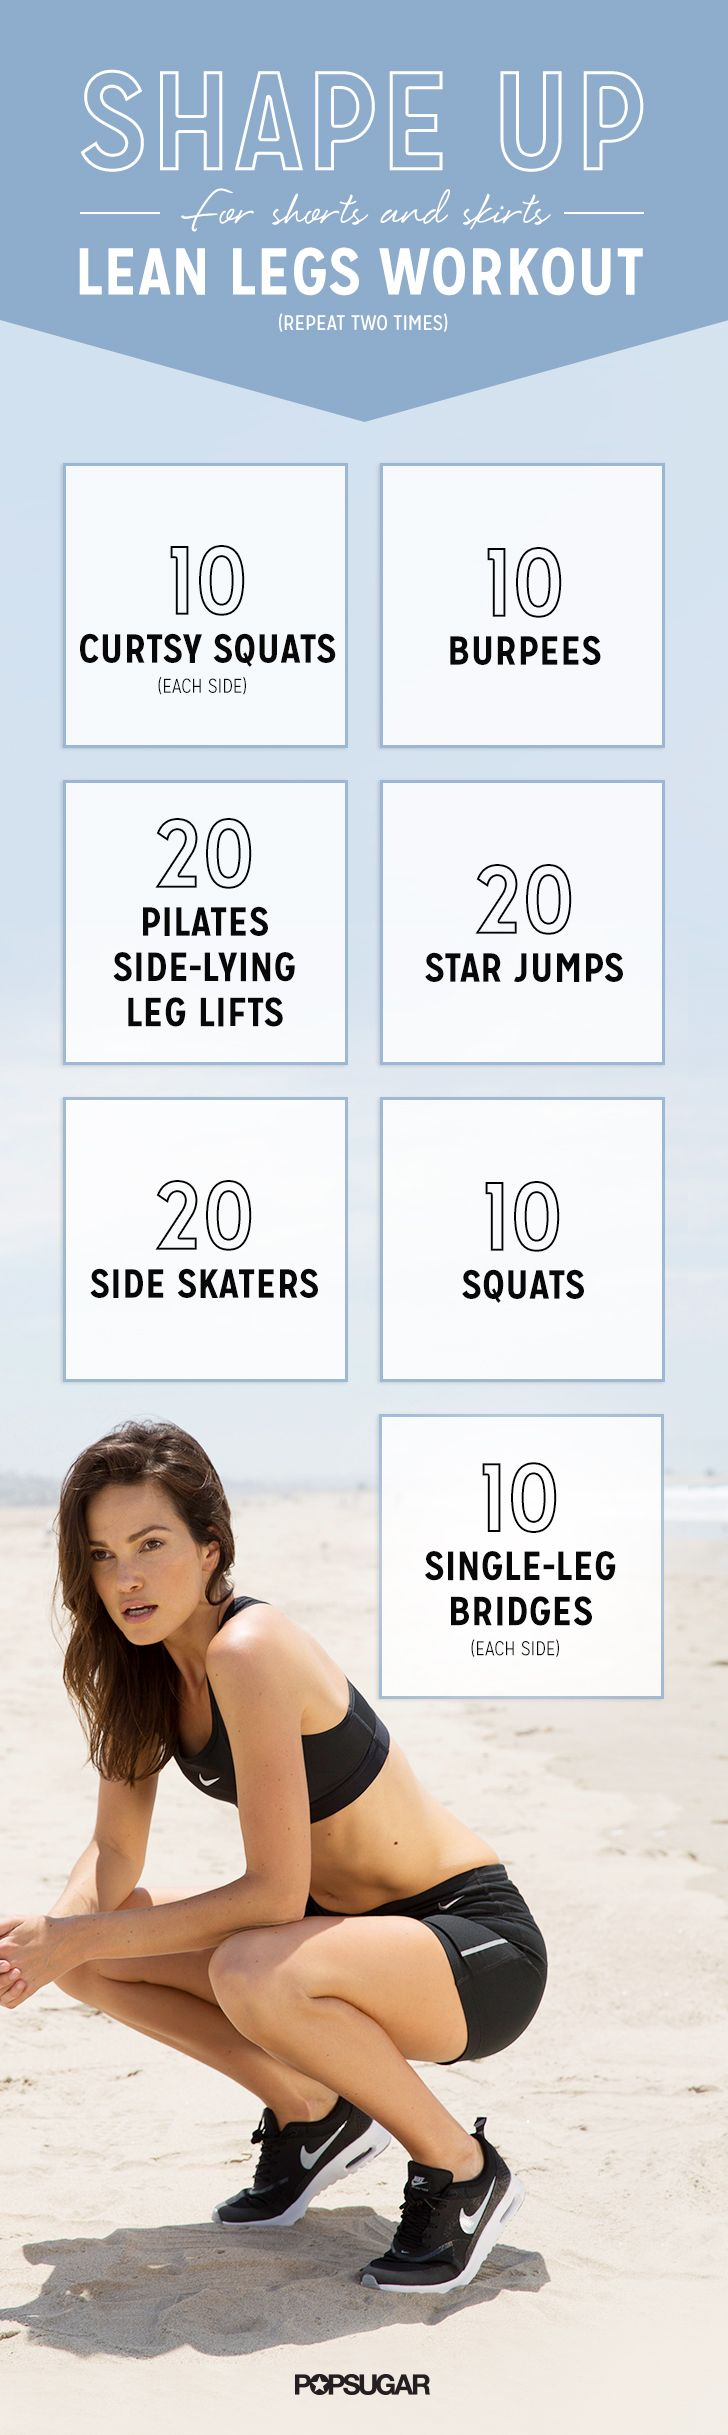 The Hot Legs Workout